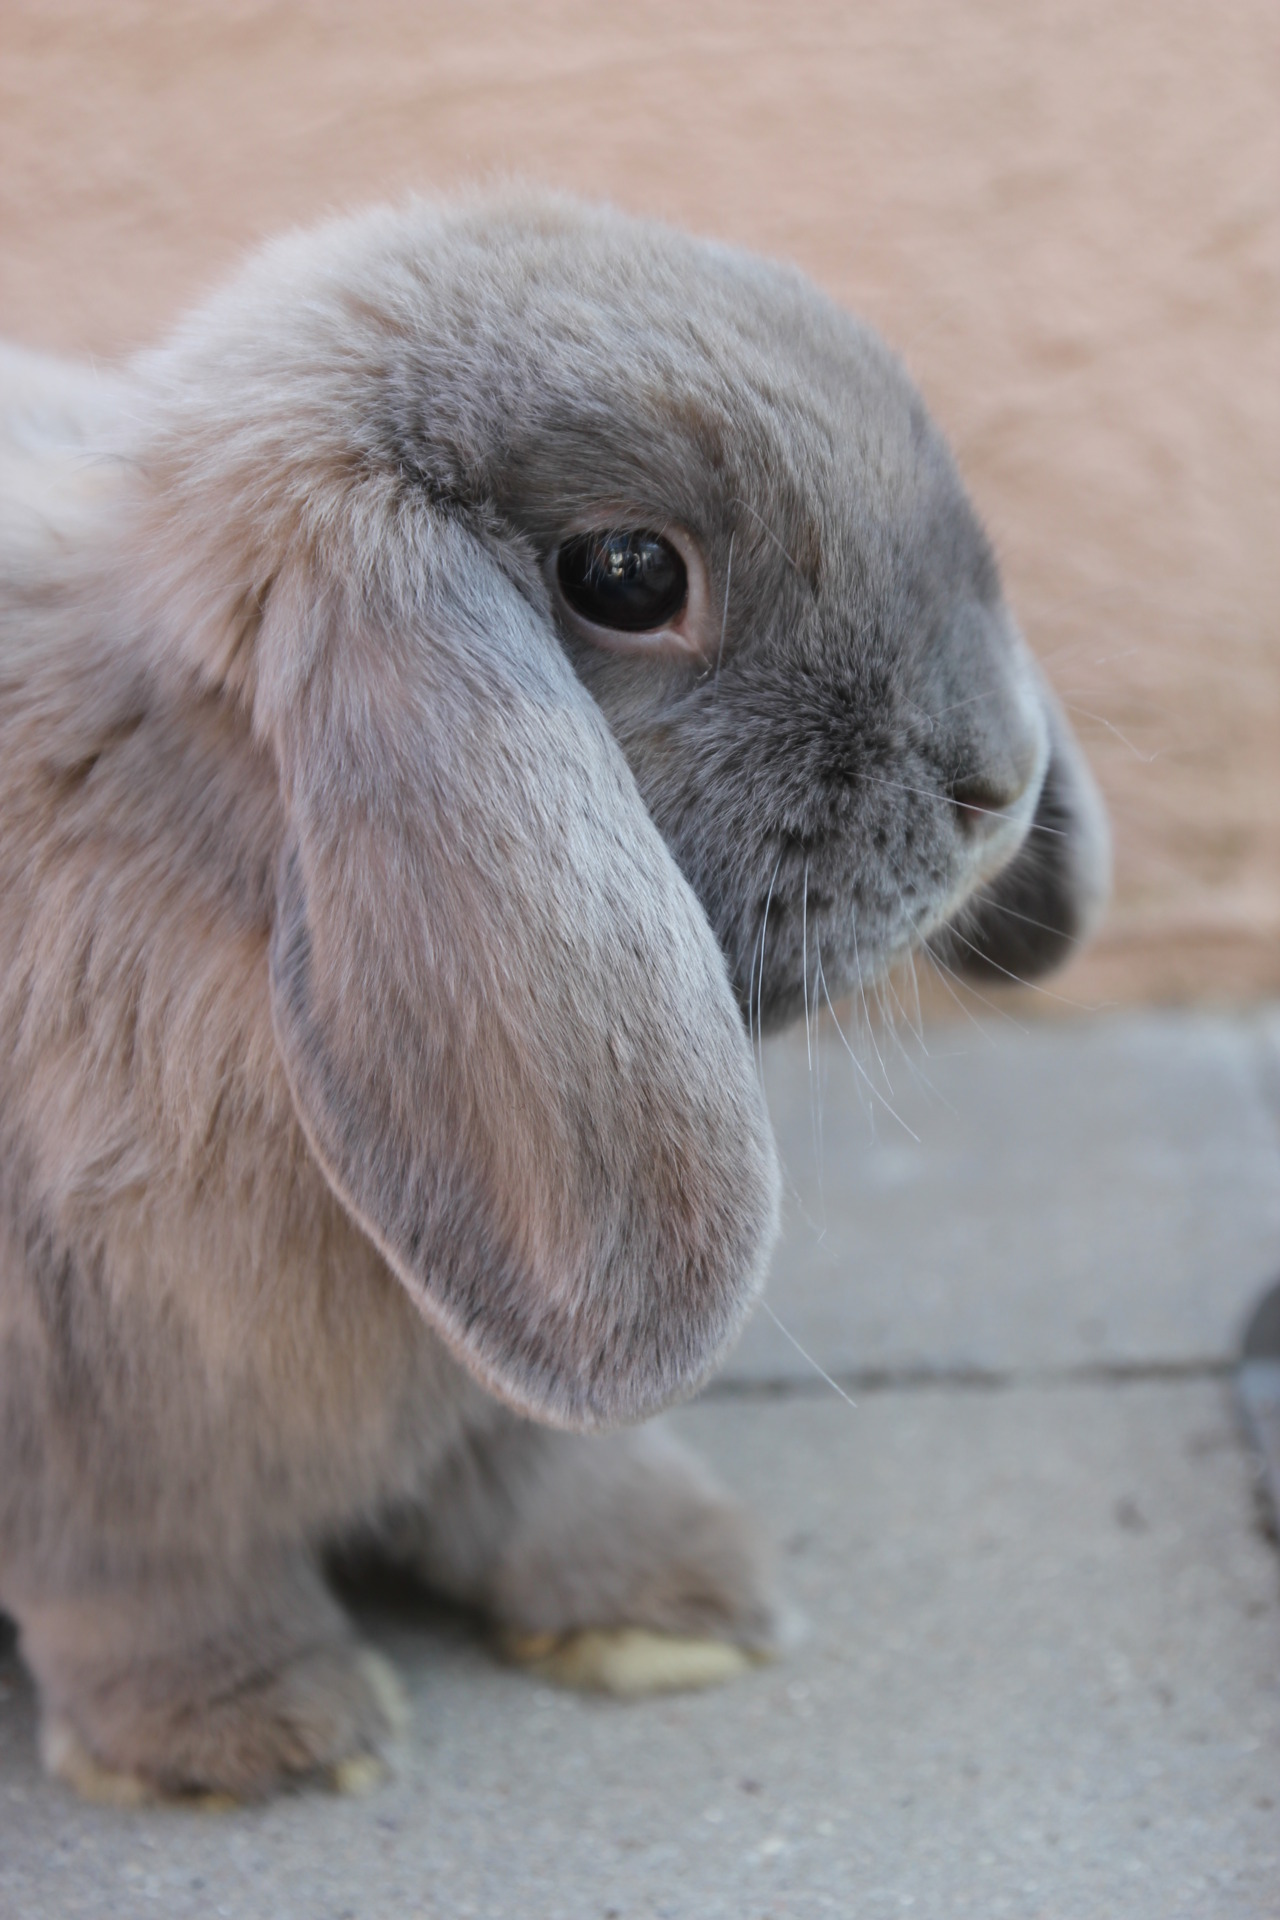 Bunny Is Curious About Something